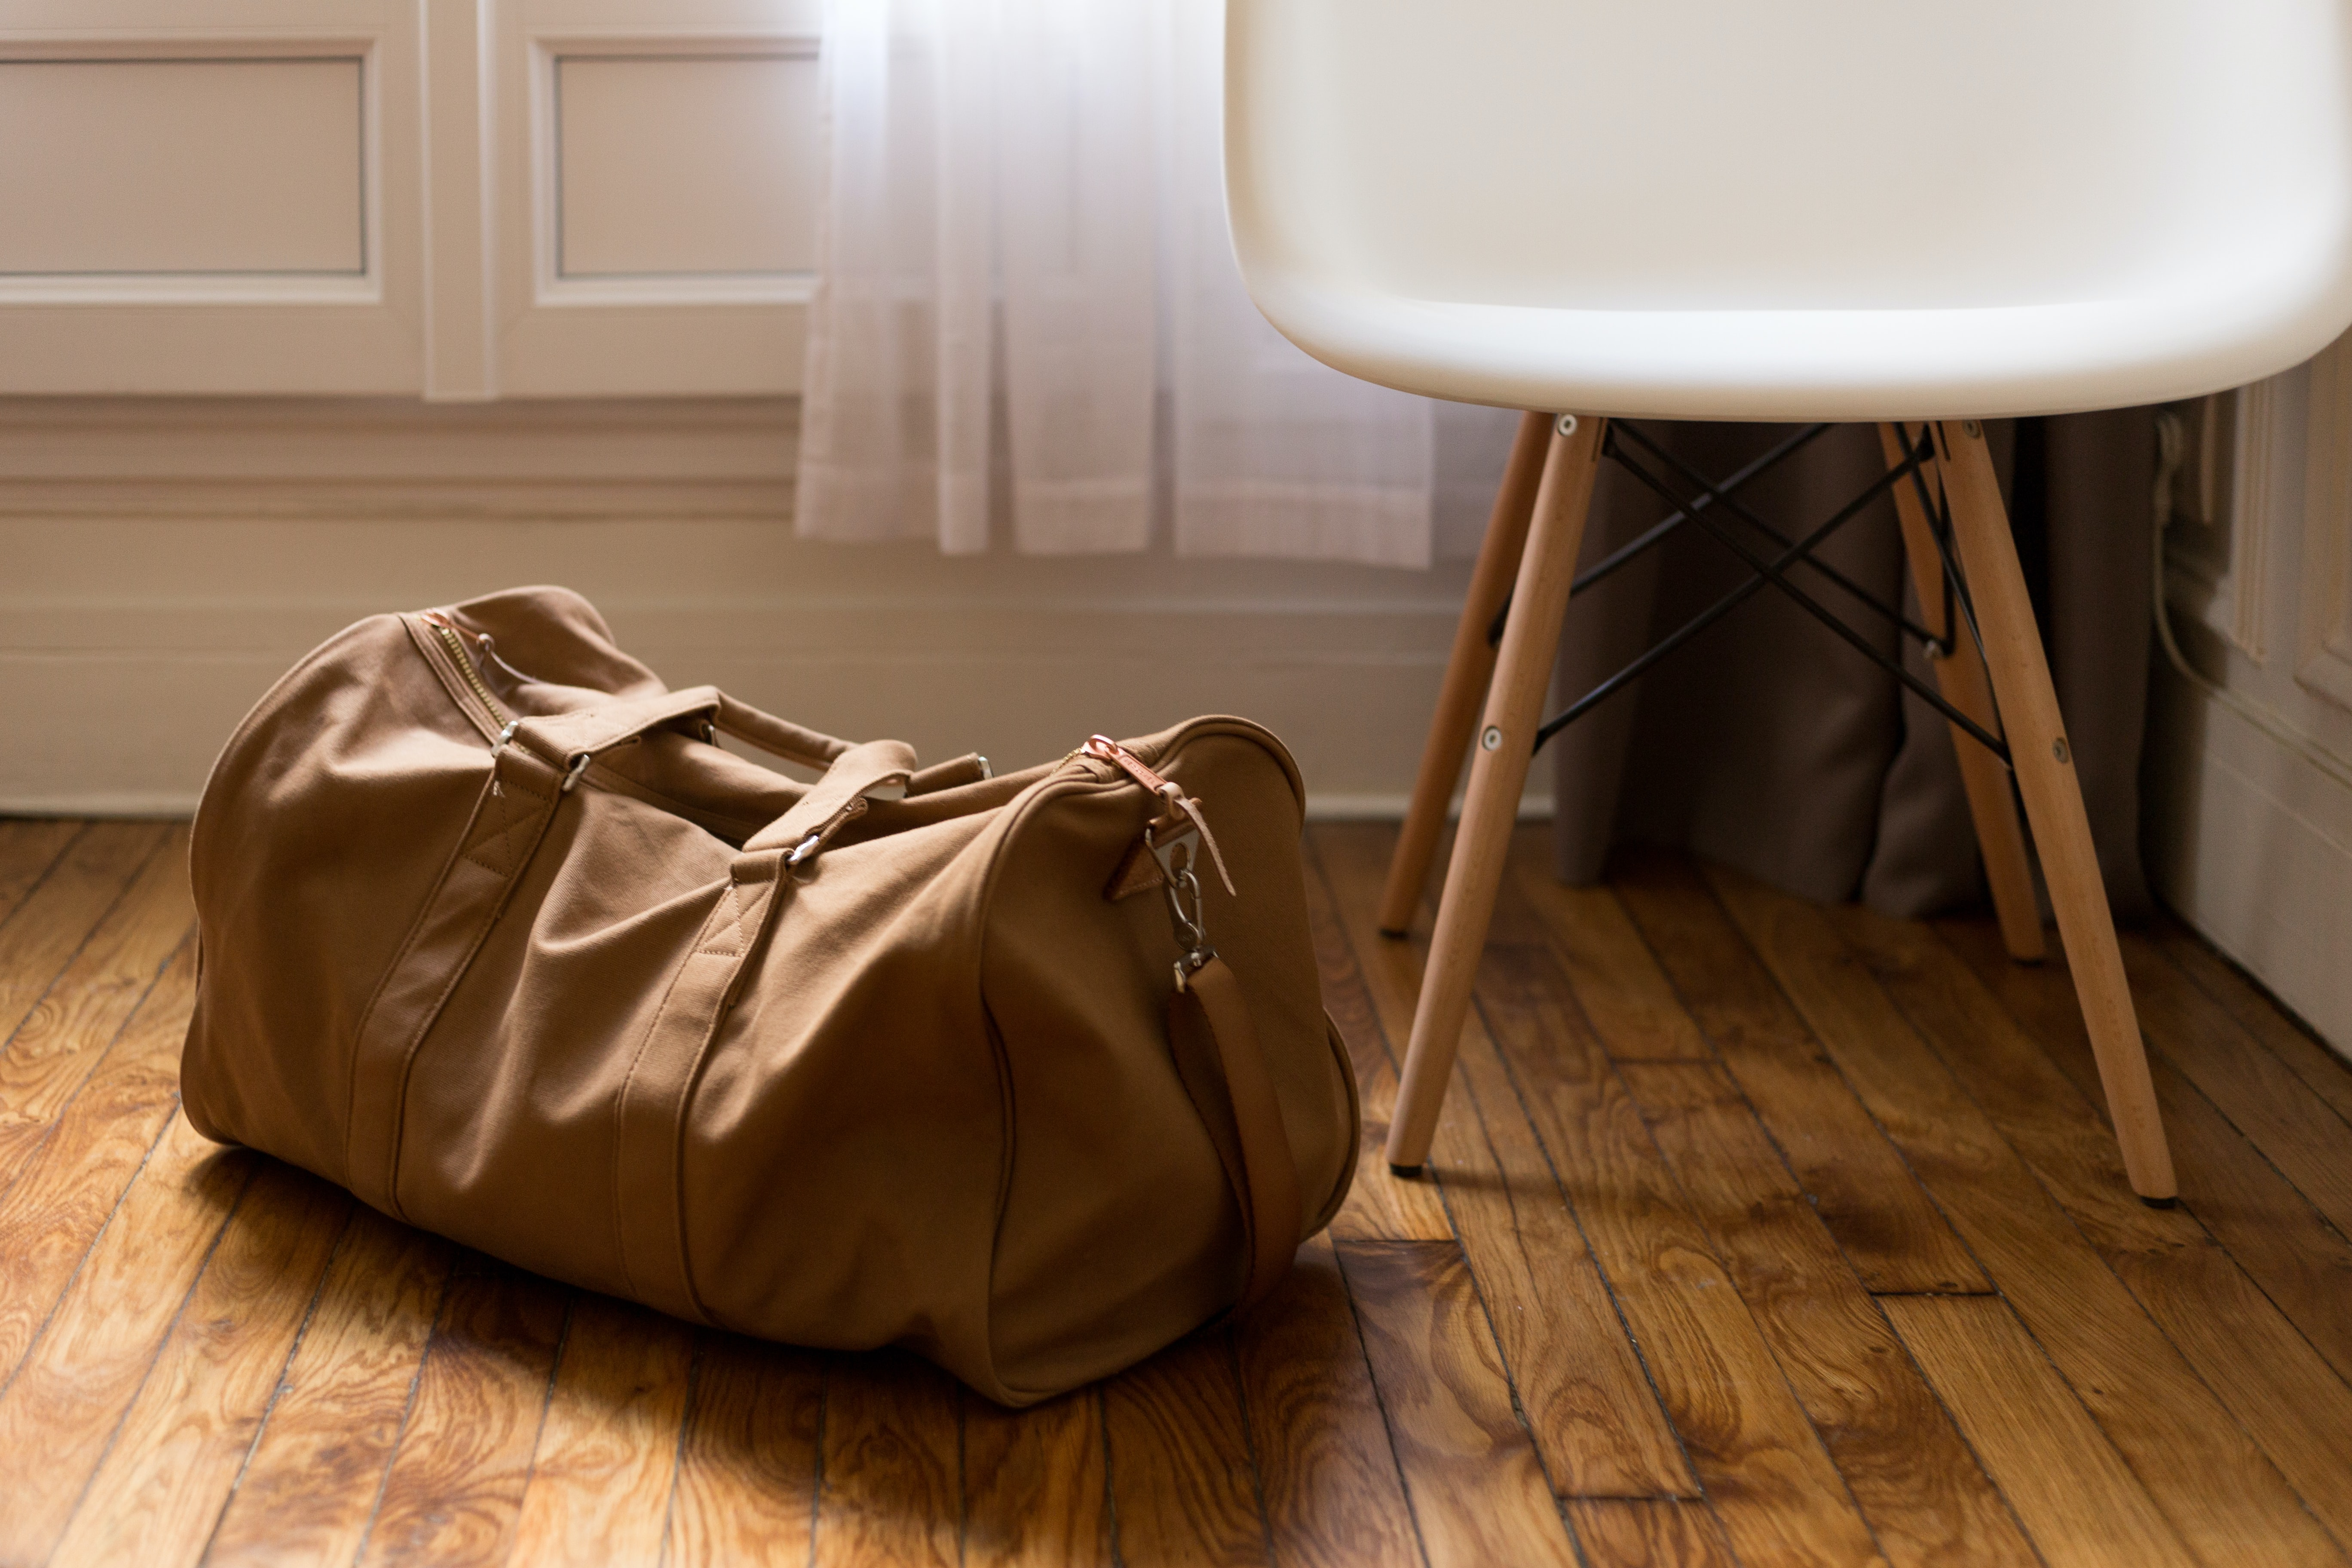 A leather duffel bag on the floor next to a small white chair